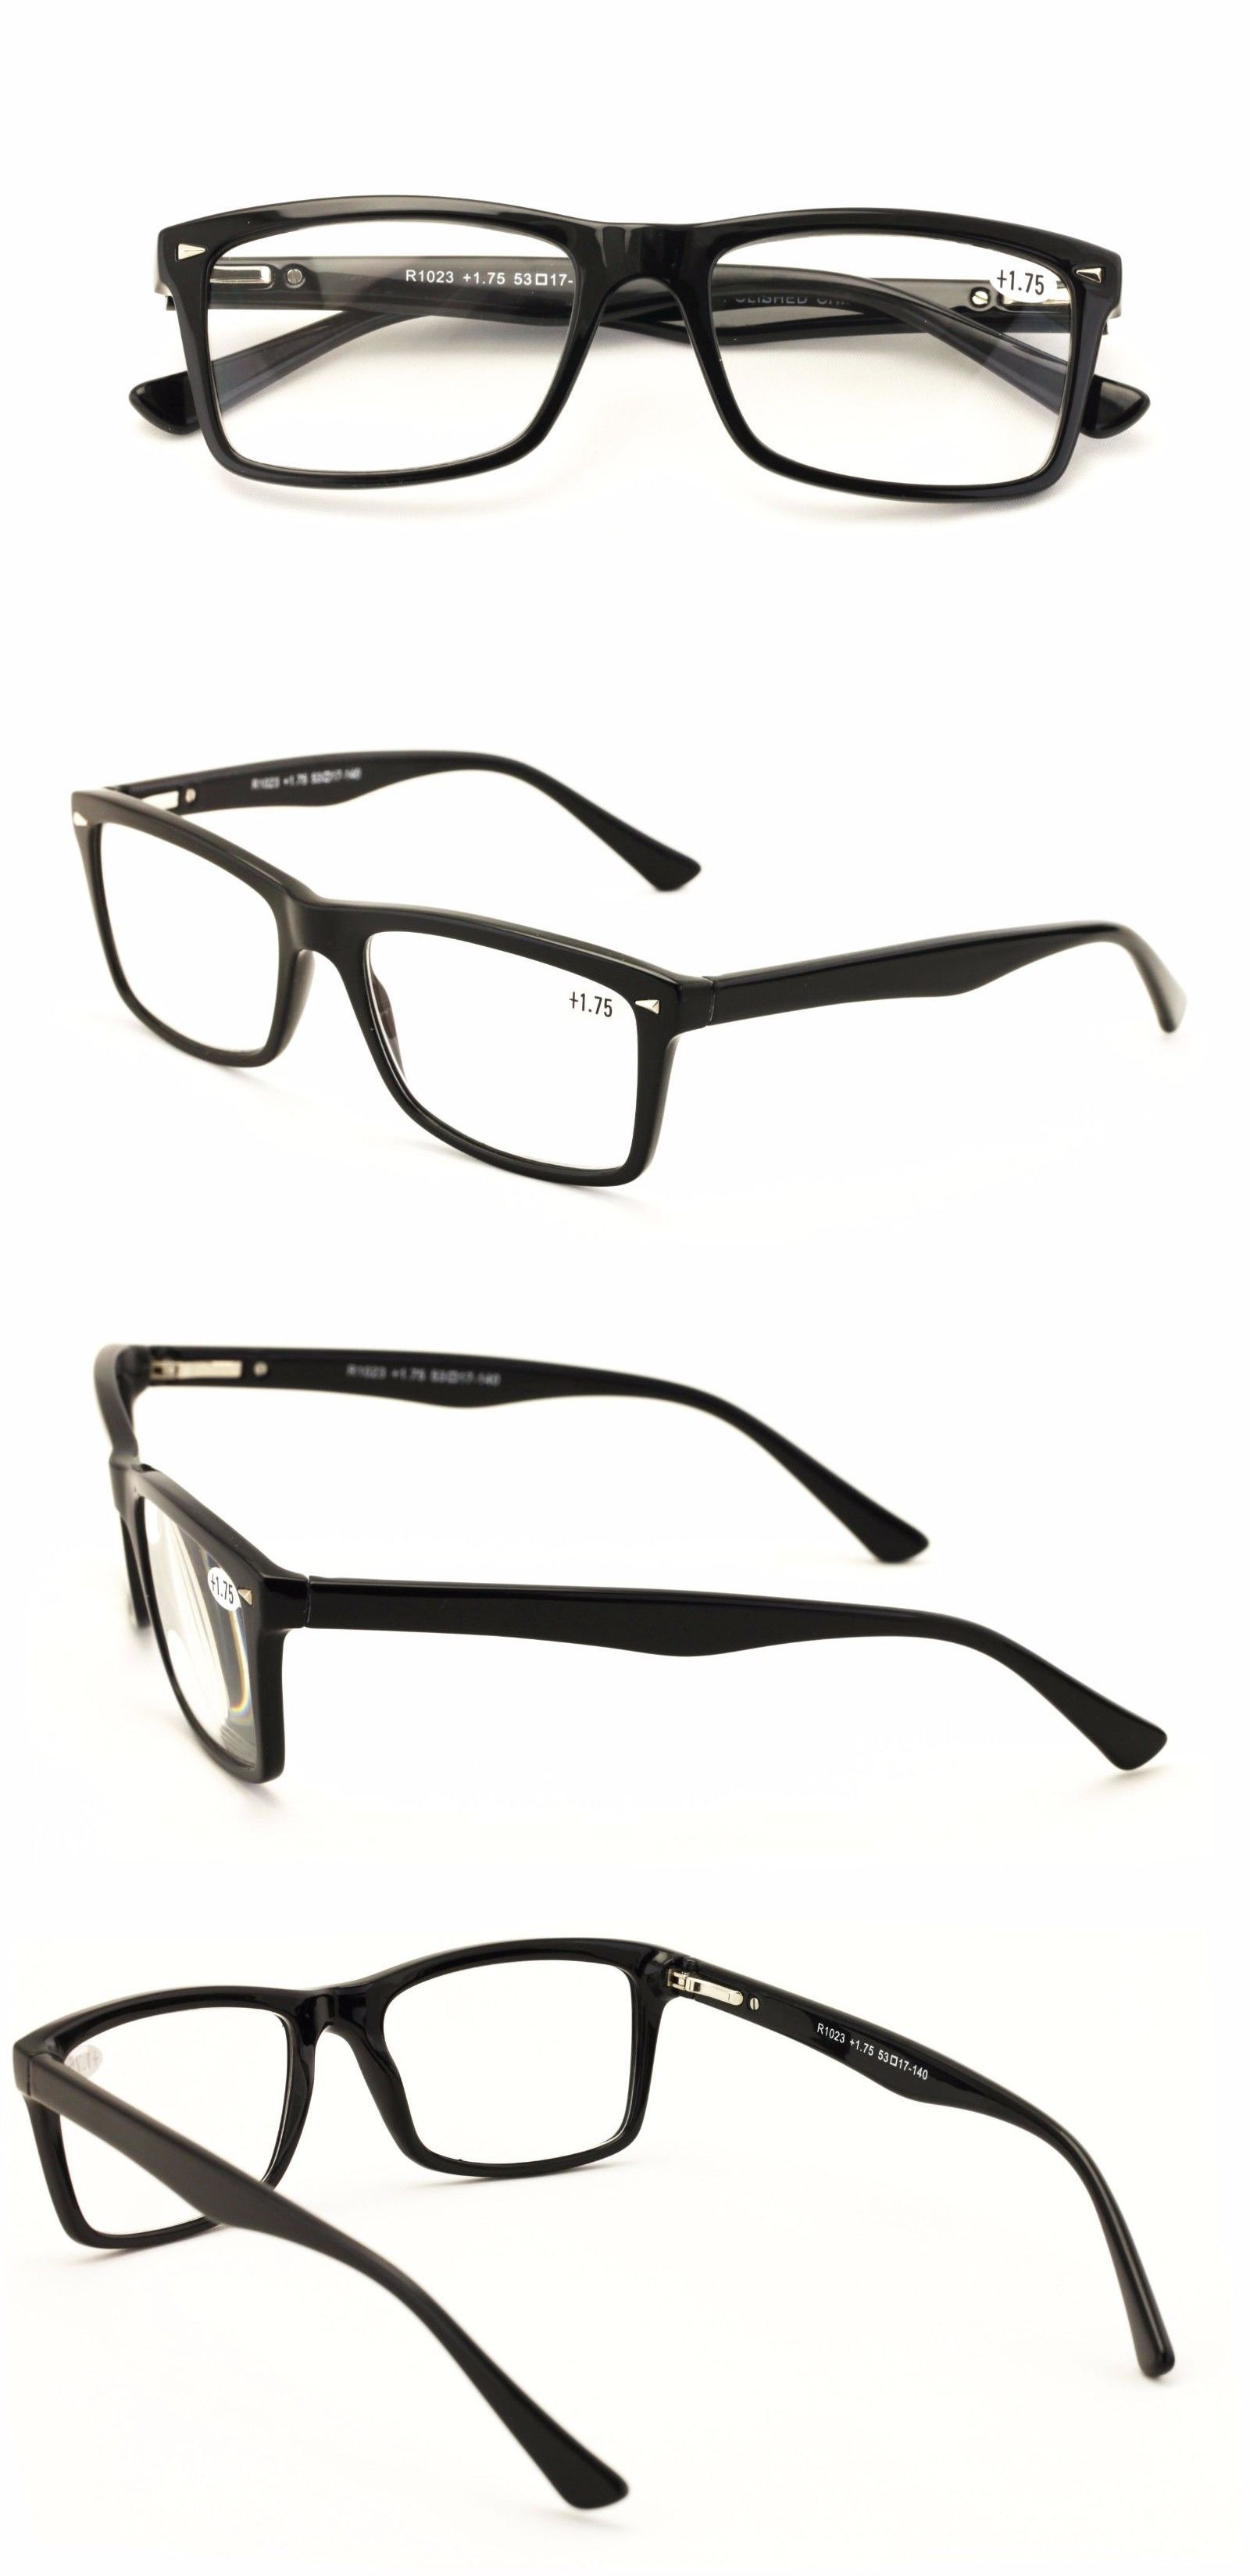 470a73ac6dec Reading Glasses 67670  Men Gloss Black Rectangle Rectangular Reading Glasses  Clark Kent Reader Tr90 -  BUY IT NOW ONLY   11.95 on eBay!